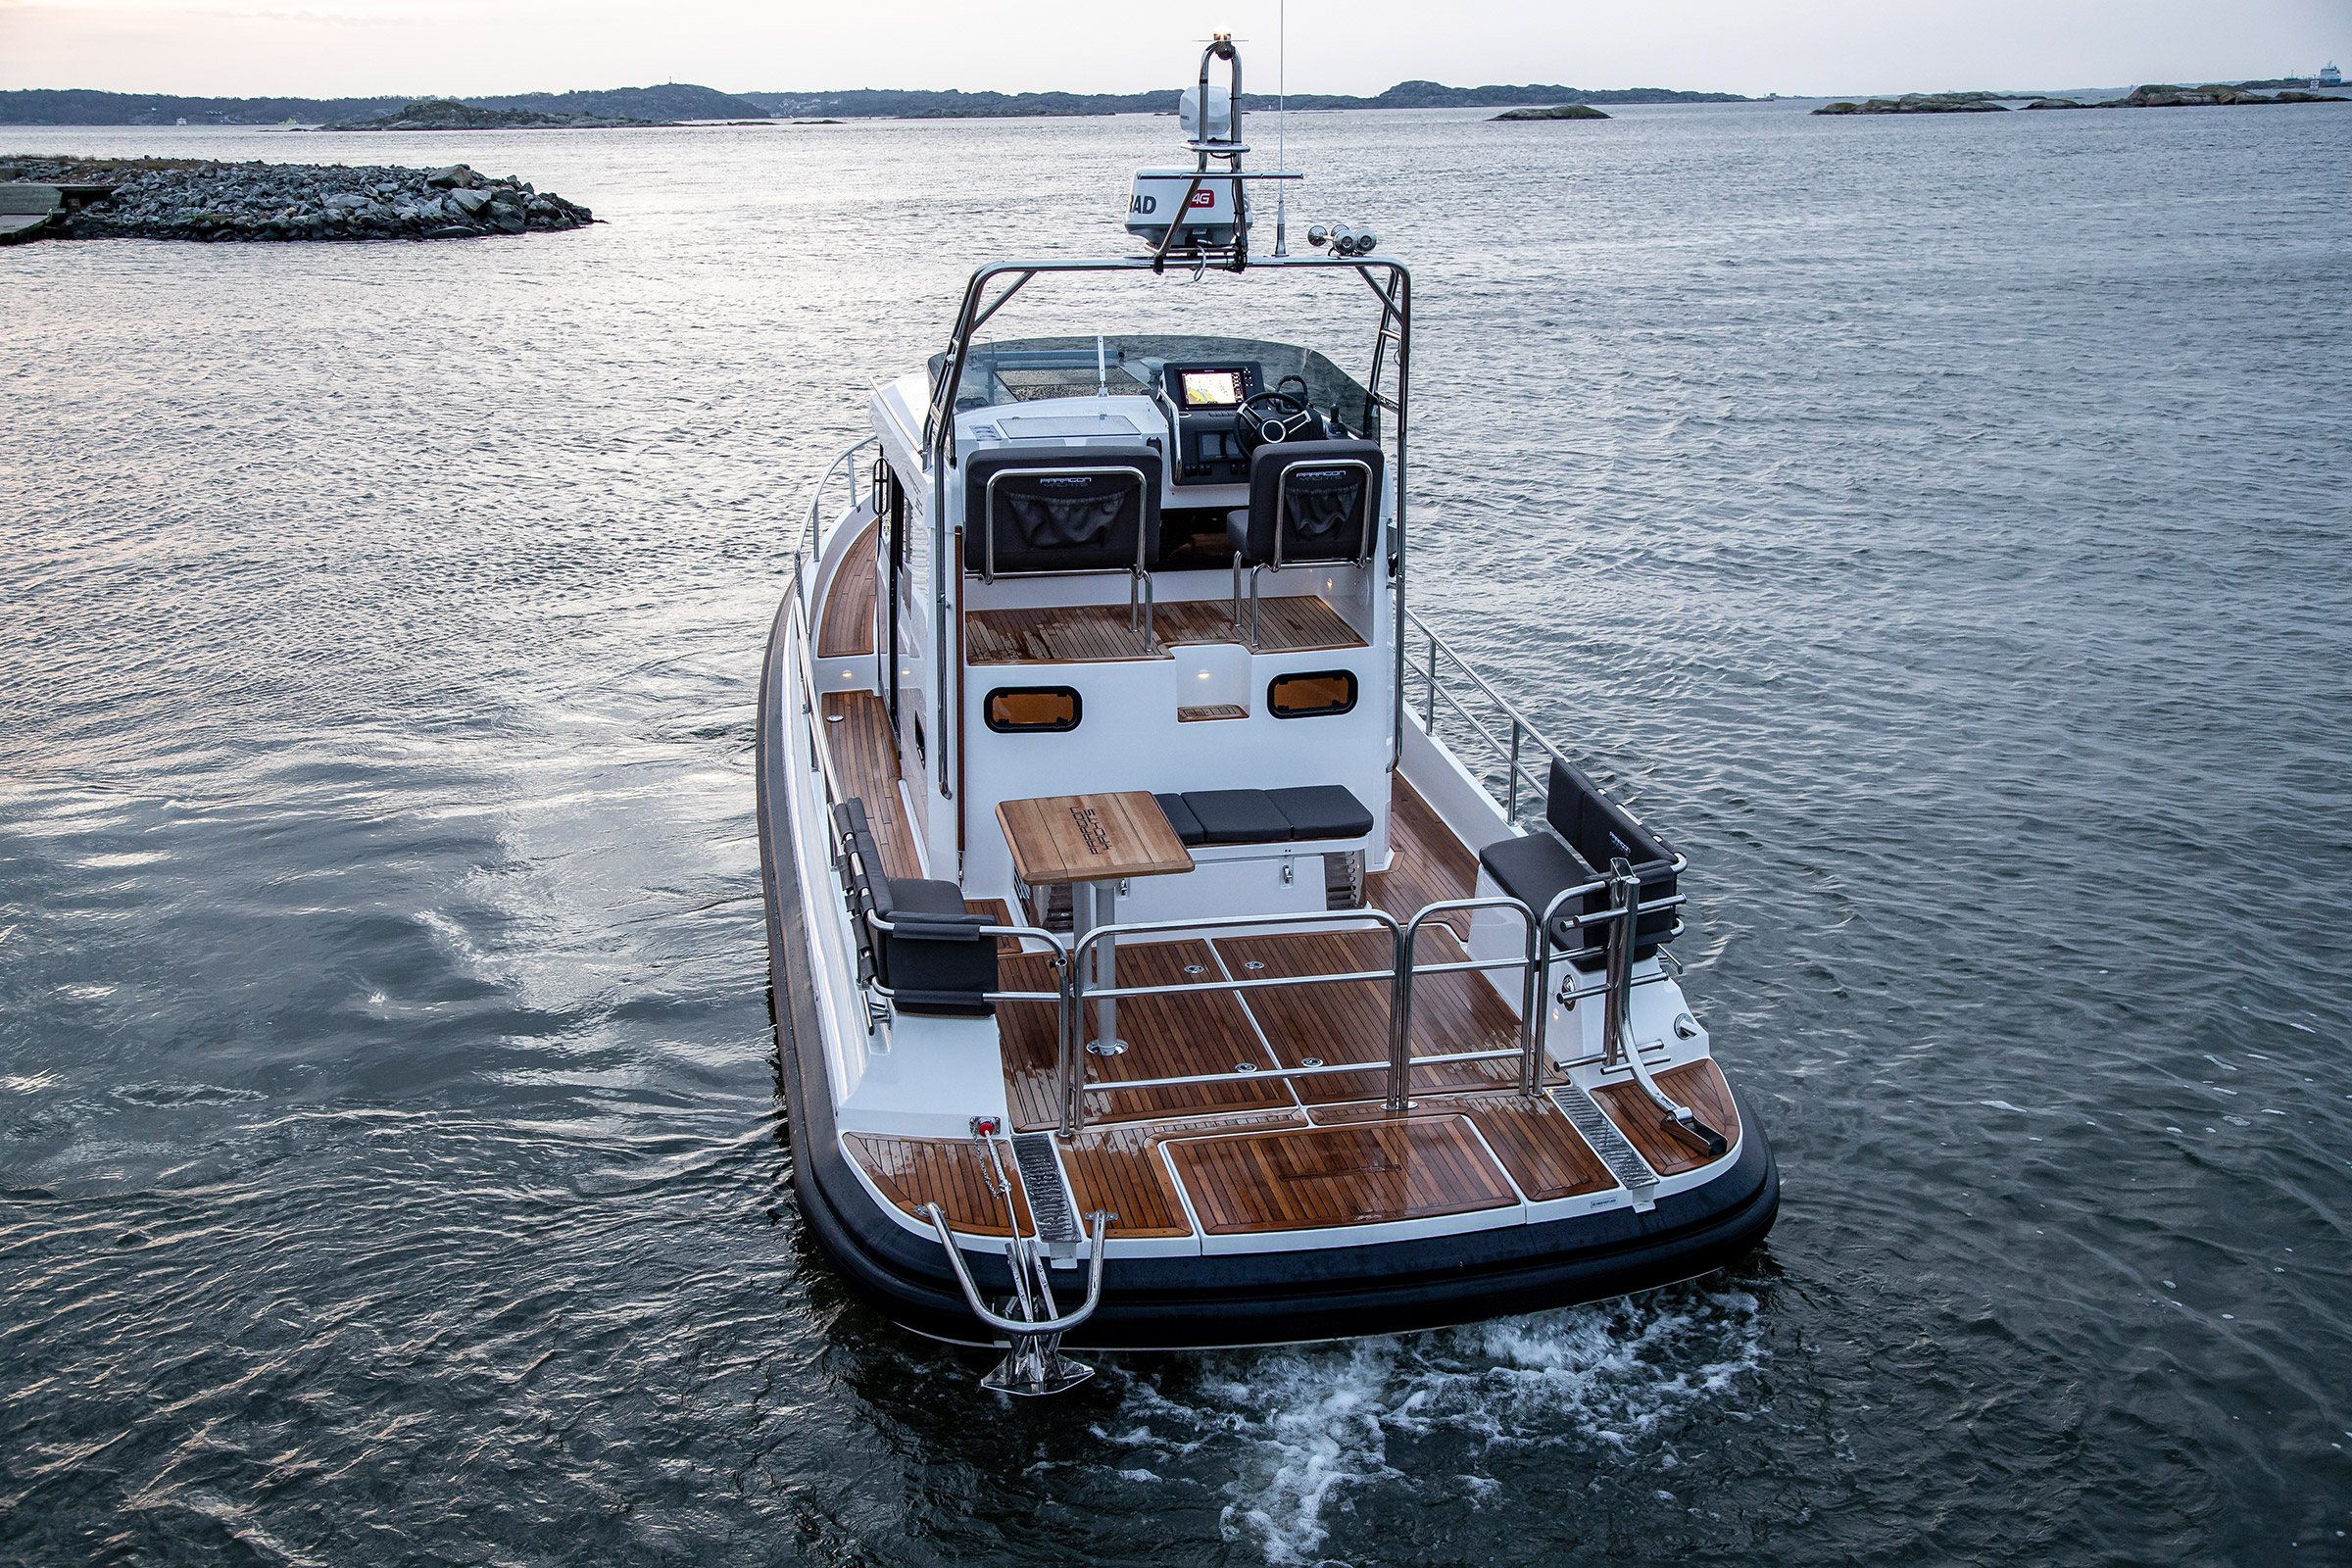 Paragon 31 flybridge, picture taken from the back. On the sea with some small islands around.